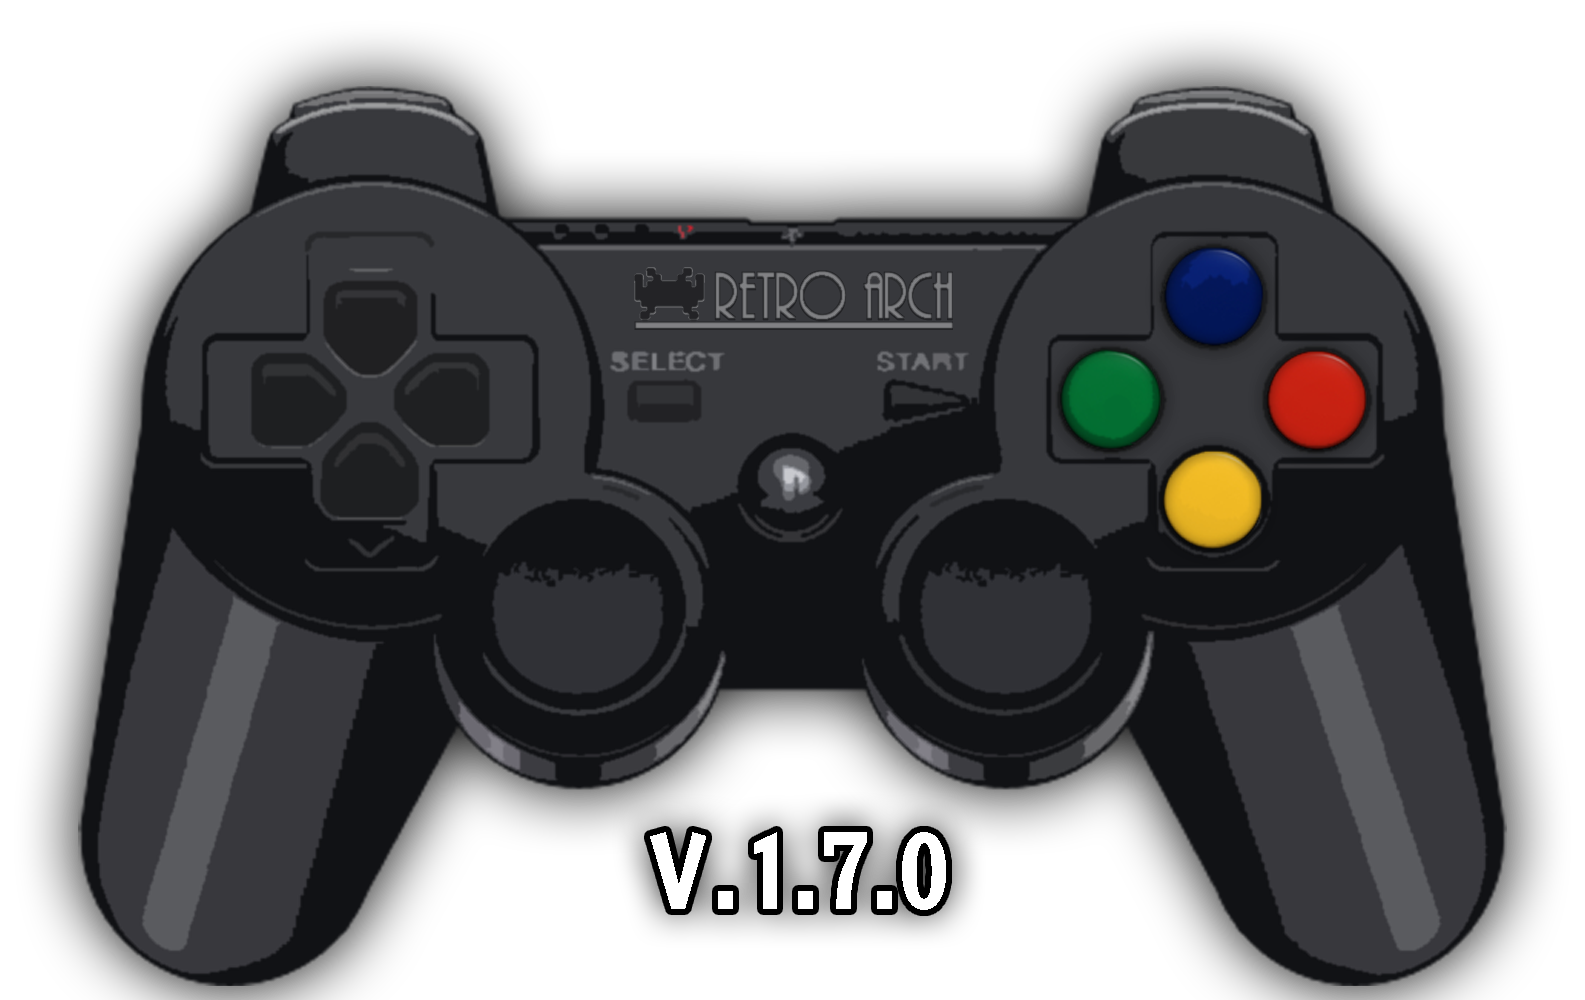 PS3 - RetroArch V 1 7 0 Icon by LizardBone JPG | PSX-Place